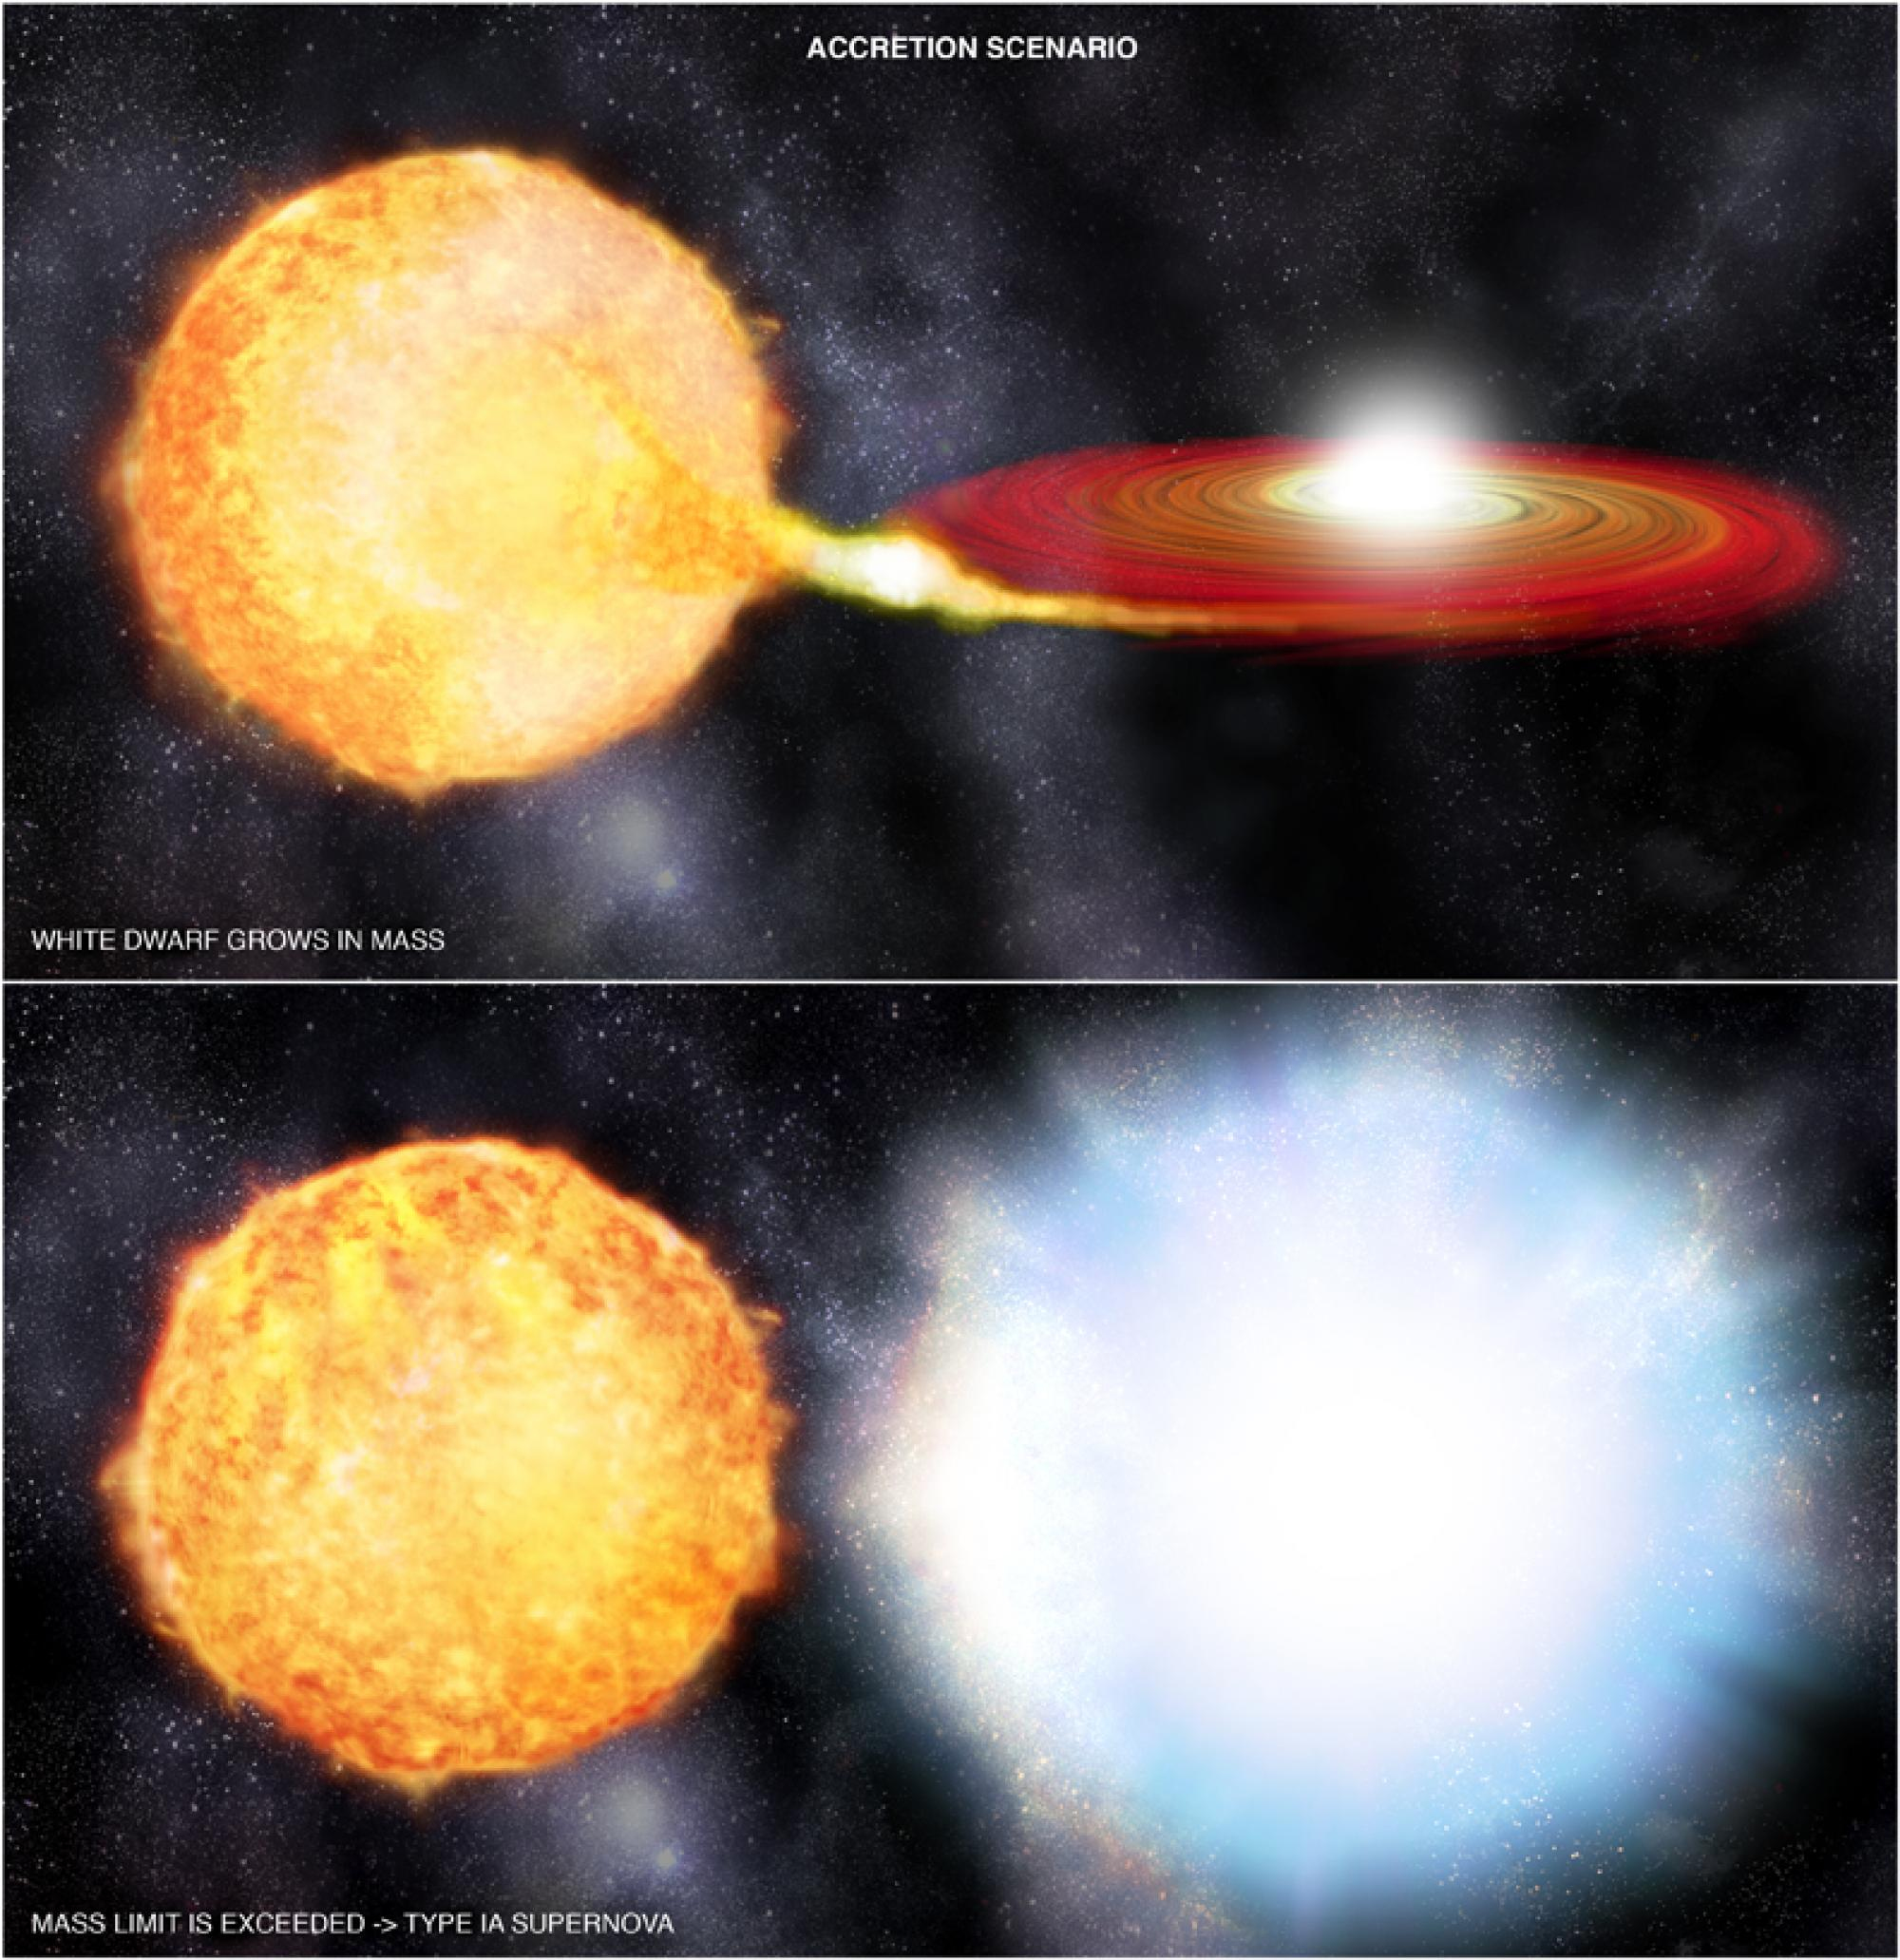 In the second scenario, which is likely the one that triggered the supernova described in this study, gas is being pulled from a sunlike star onto a white dwarf via a red disk. When the amount of material accreted onto the white dwarf causes the weight li